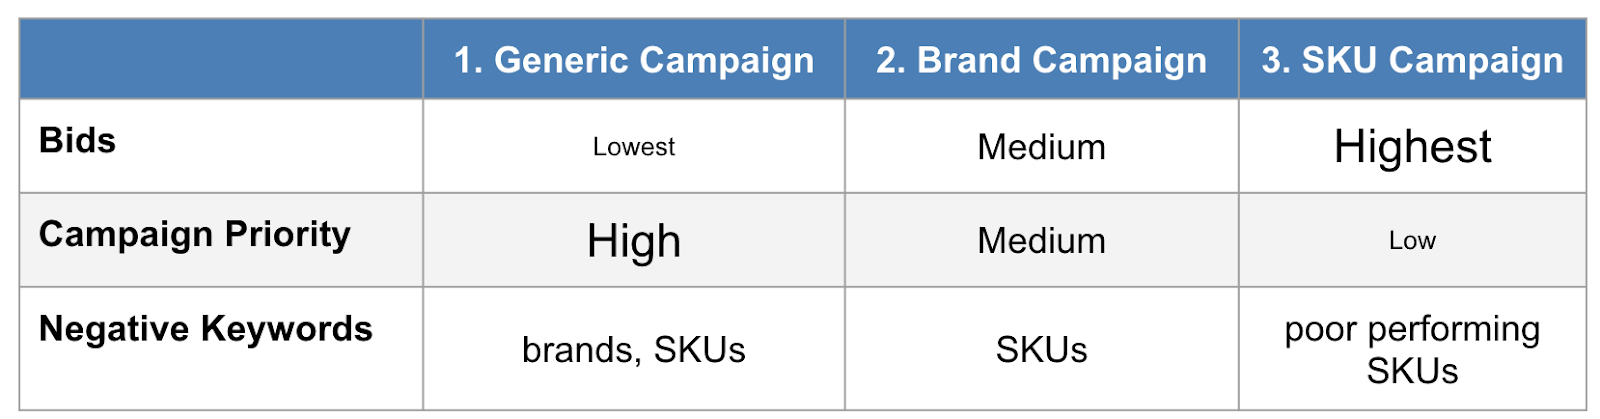 shopping campaign bids, priorities, and negative keywords